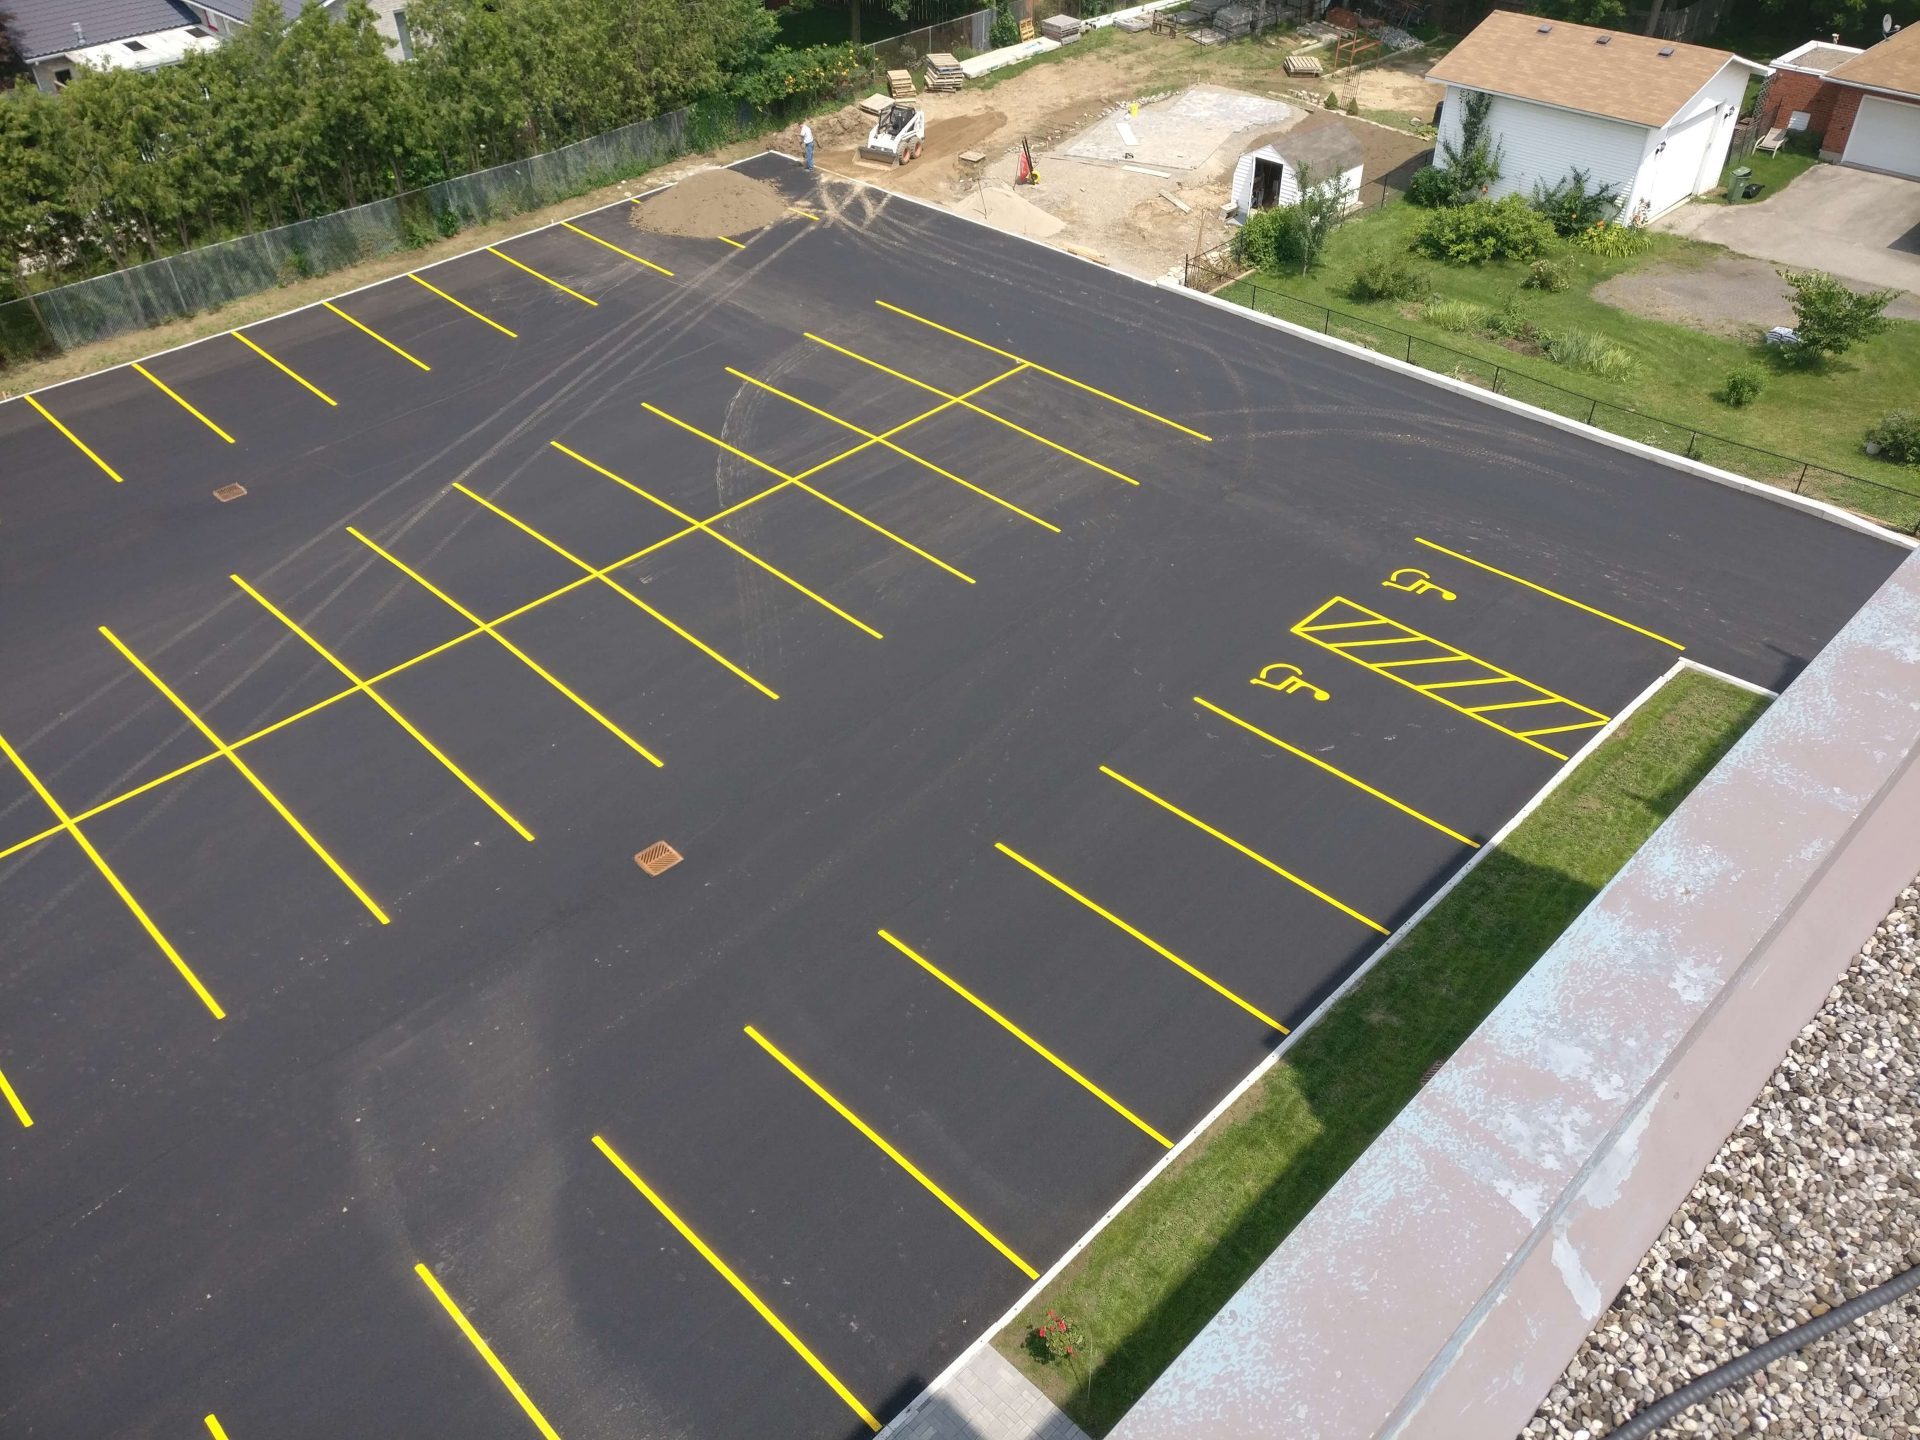 finished parking lot with handicap spaces